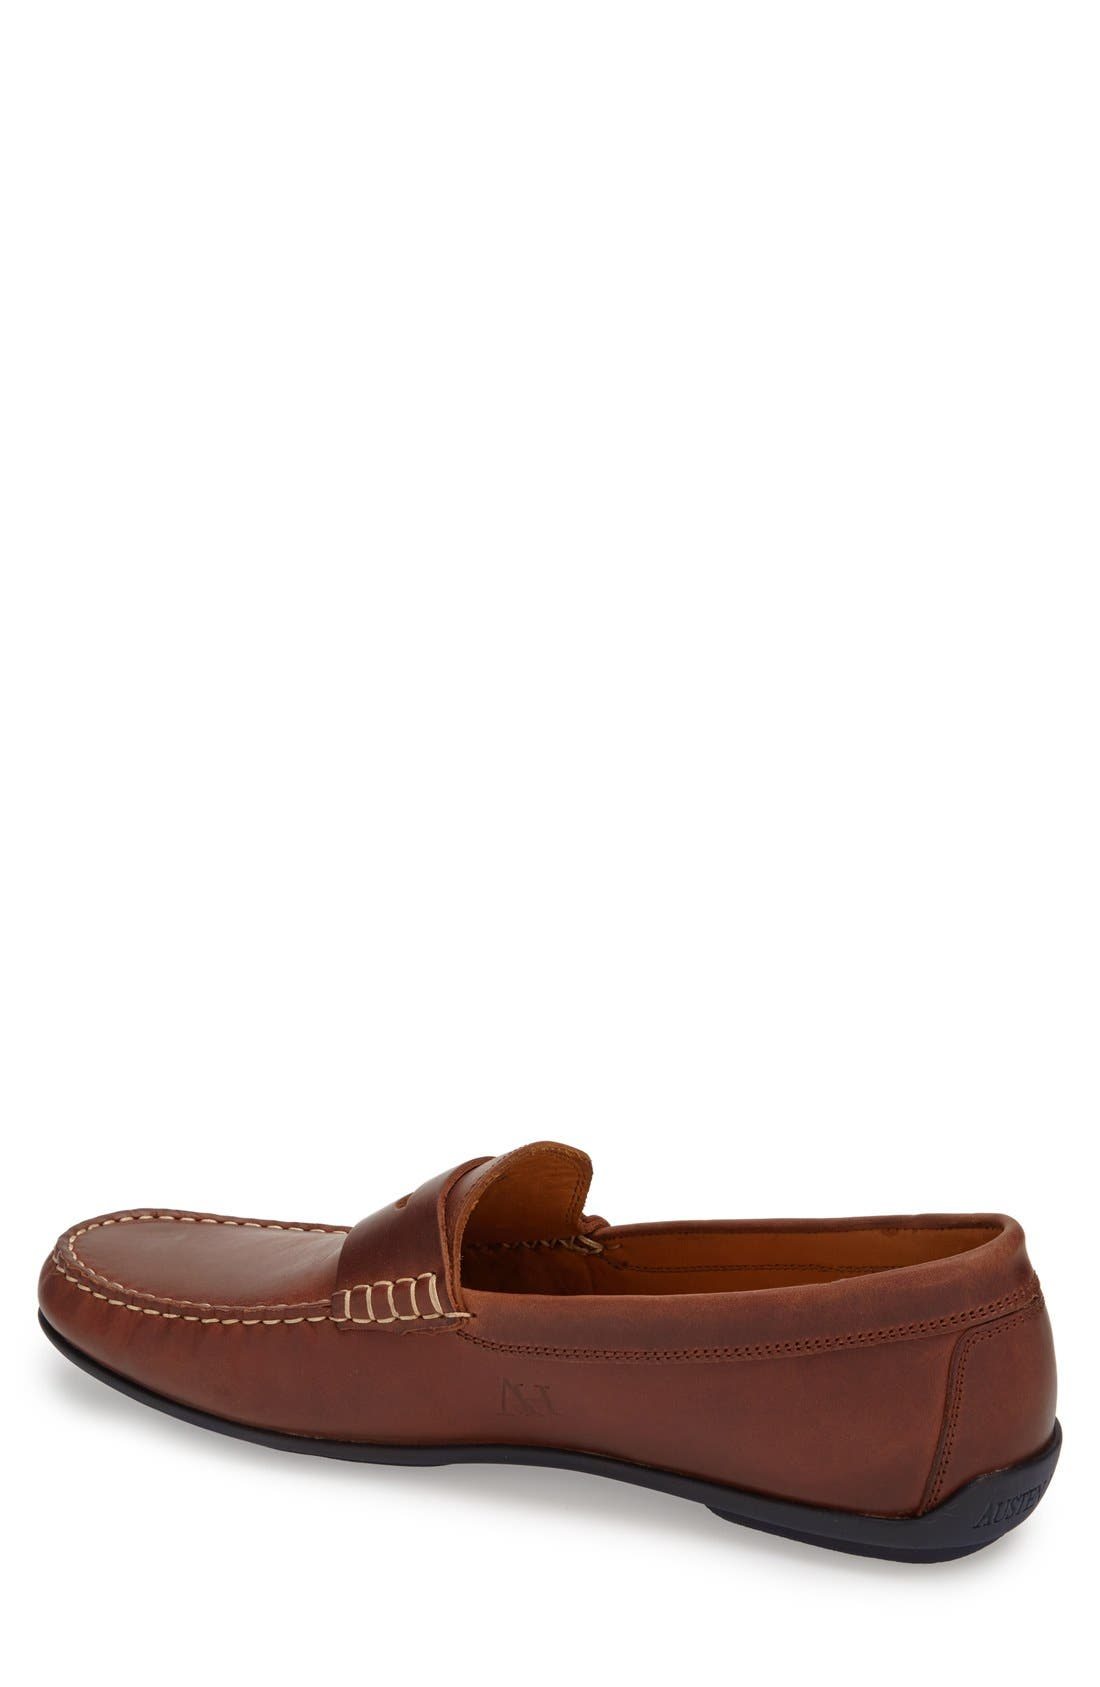 'Clinton' Leather Penny Loafer,                             Alternate thumbnail 2, color,                             Light Brown